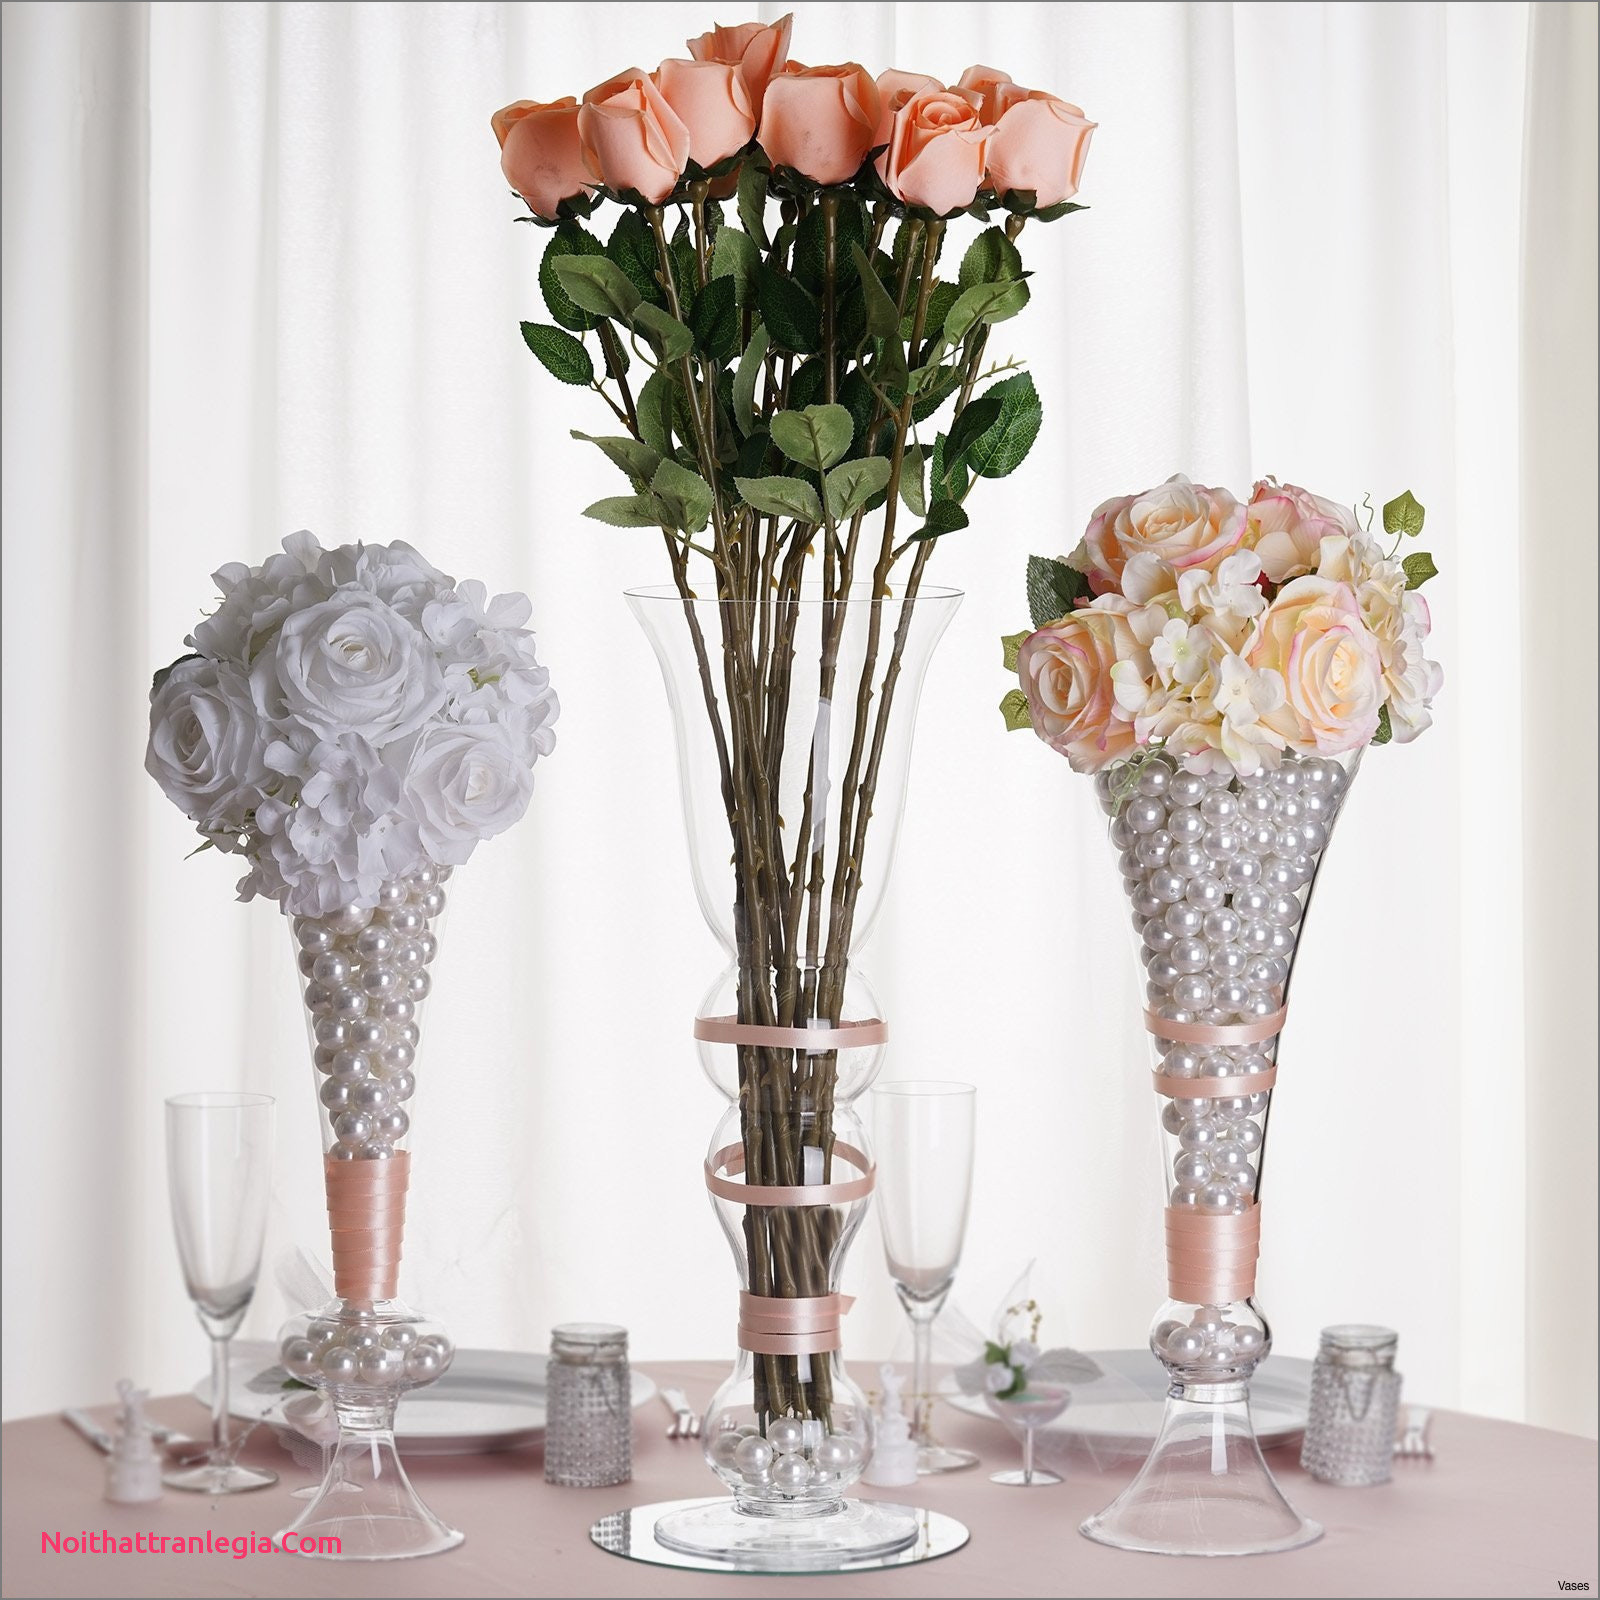 inexpensive clear glass vases of 20 how to clean flower vases noithattranlegia vases design intended for update clipart awesome flower vase table 04h vases tablei 0d clipart dining base end design